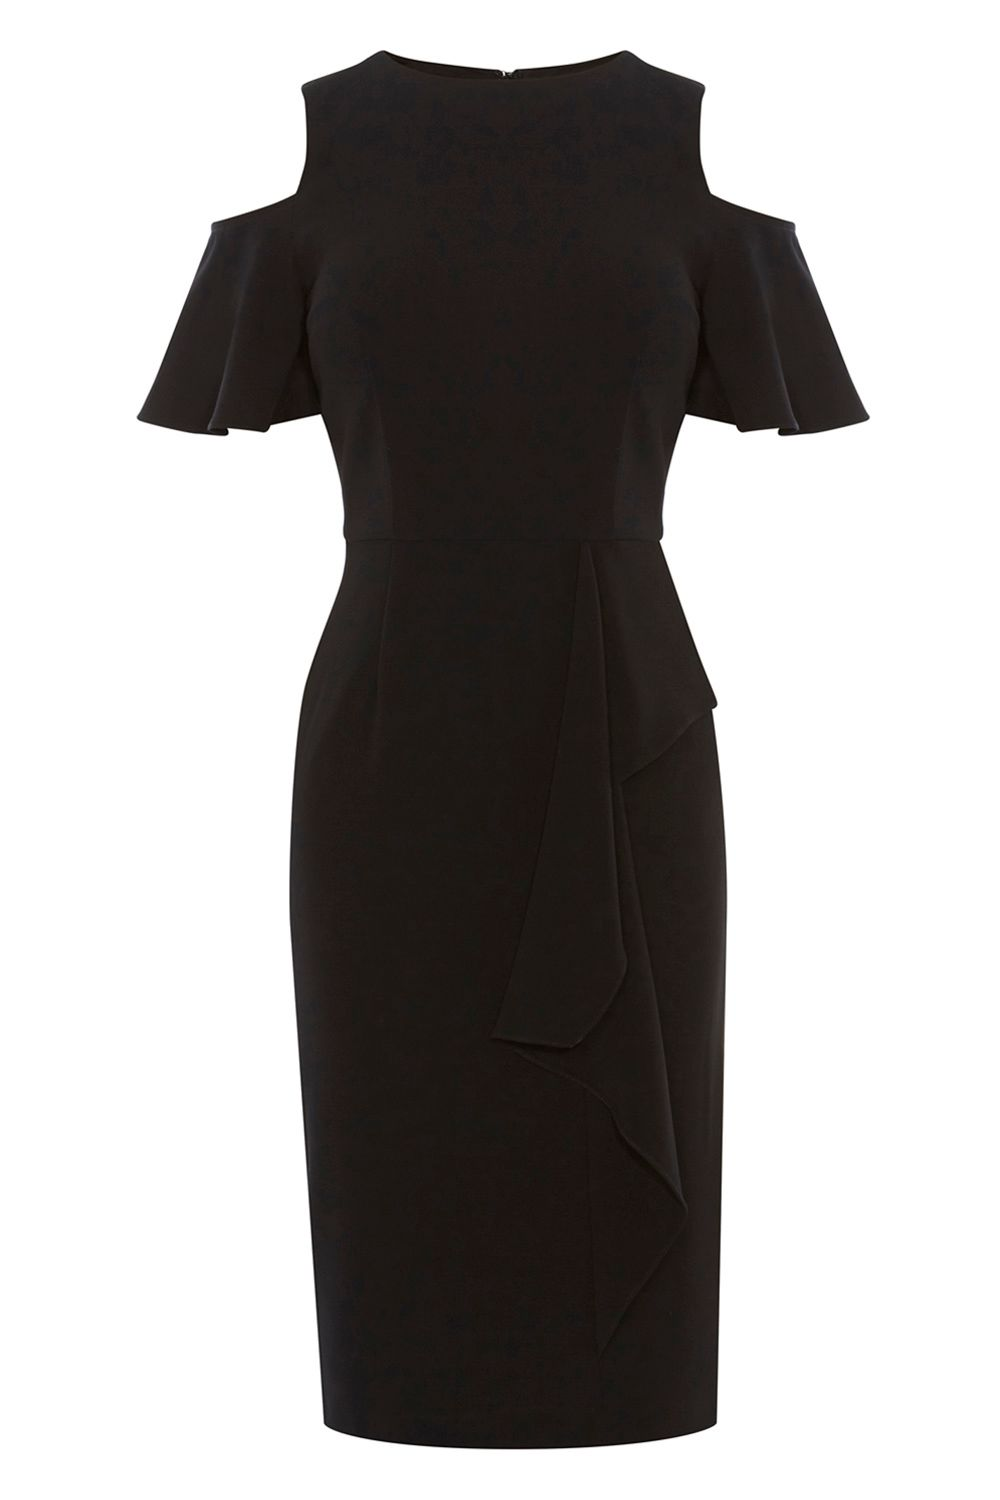 Coast Lendra Crepe Dress, Black